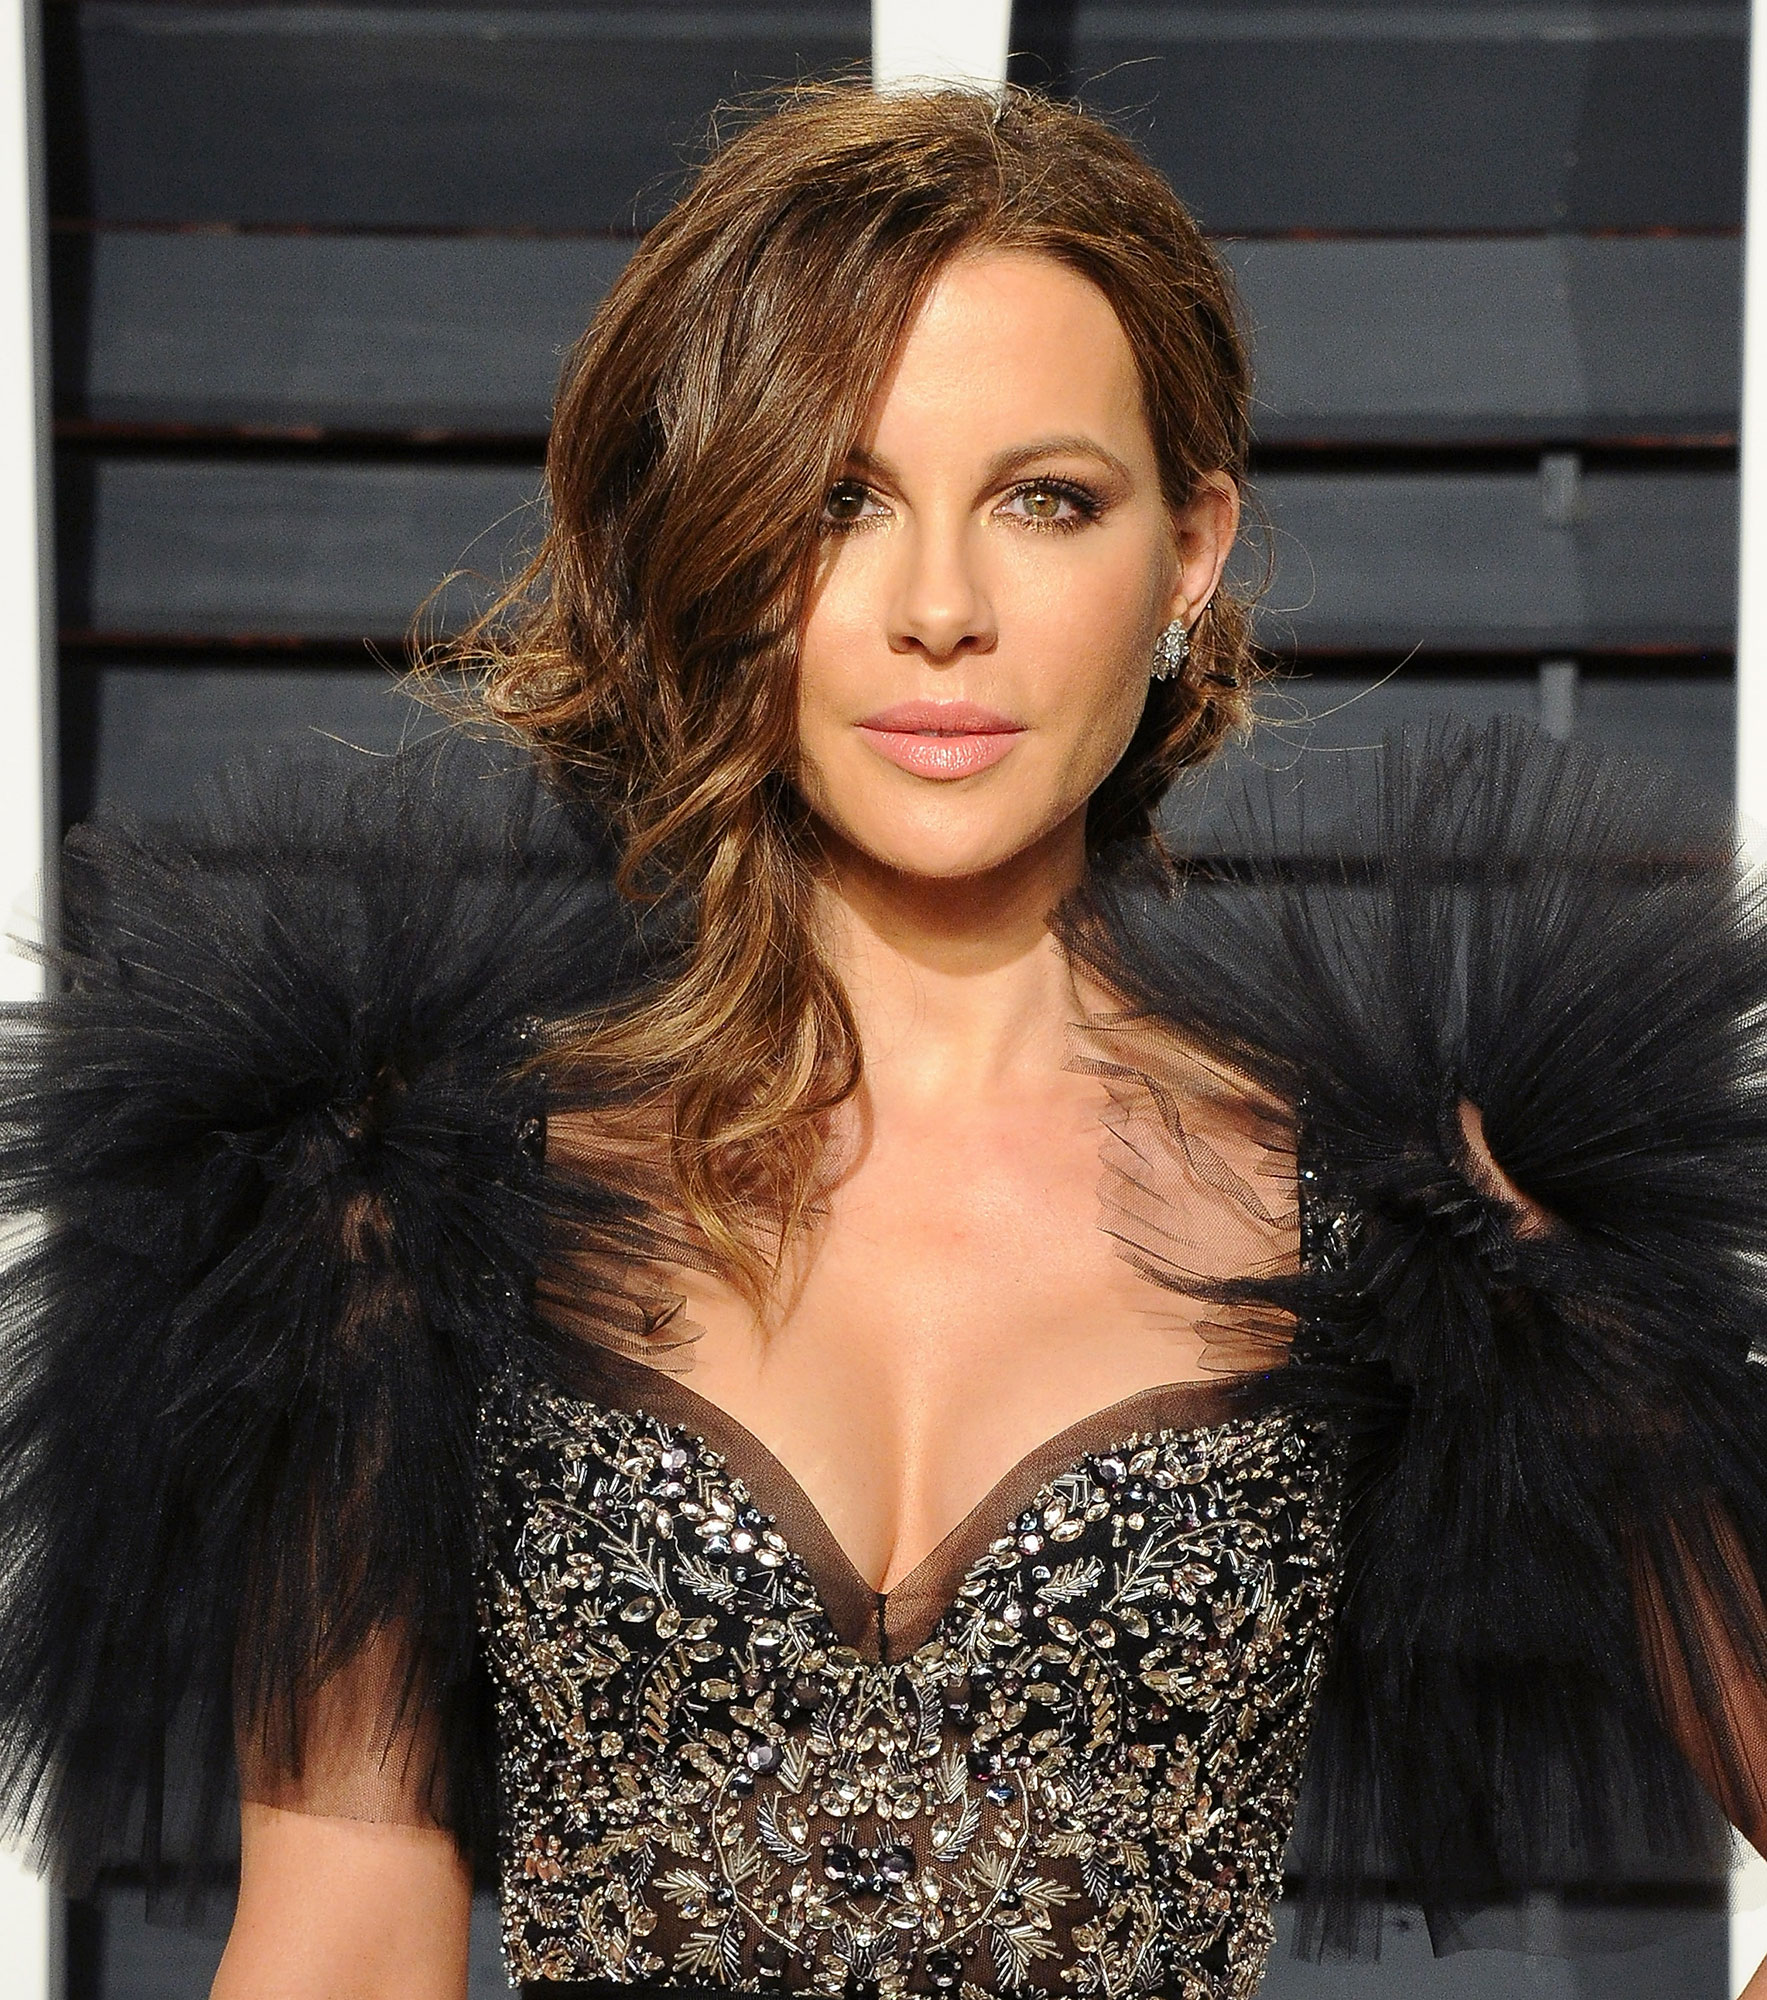 Kate Beckinsale - Stars Who Have Never Won Oscars - The action-film staple is not a staple on the Oscars circuit. Beckinsale has never been nominated for one of the Academy's prestigious awards.